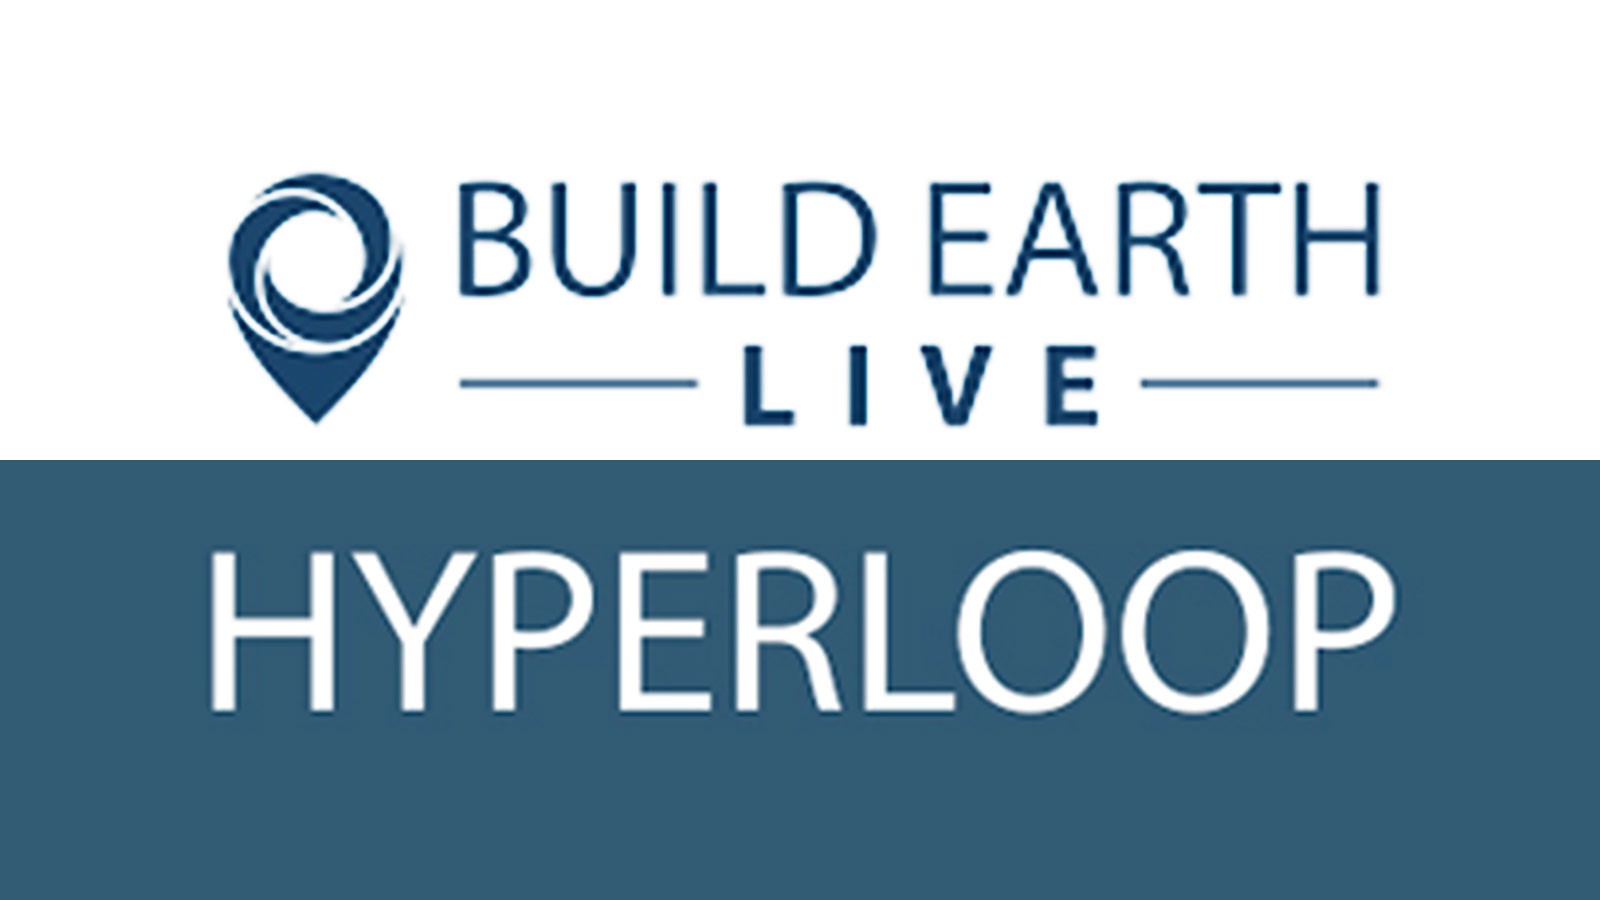 Build Earth Live - The Next Chapter